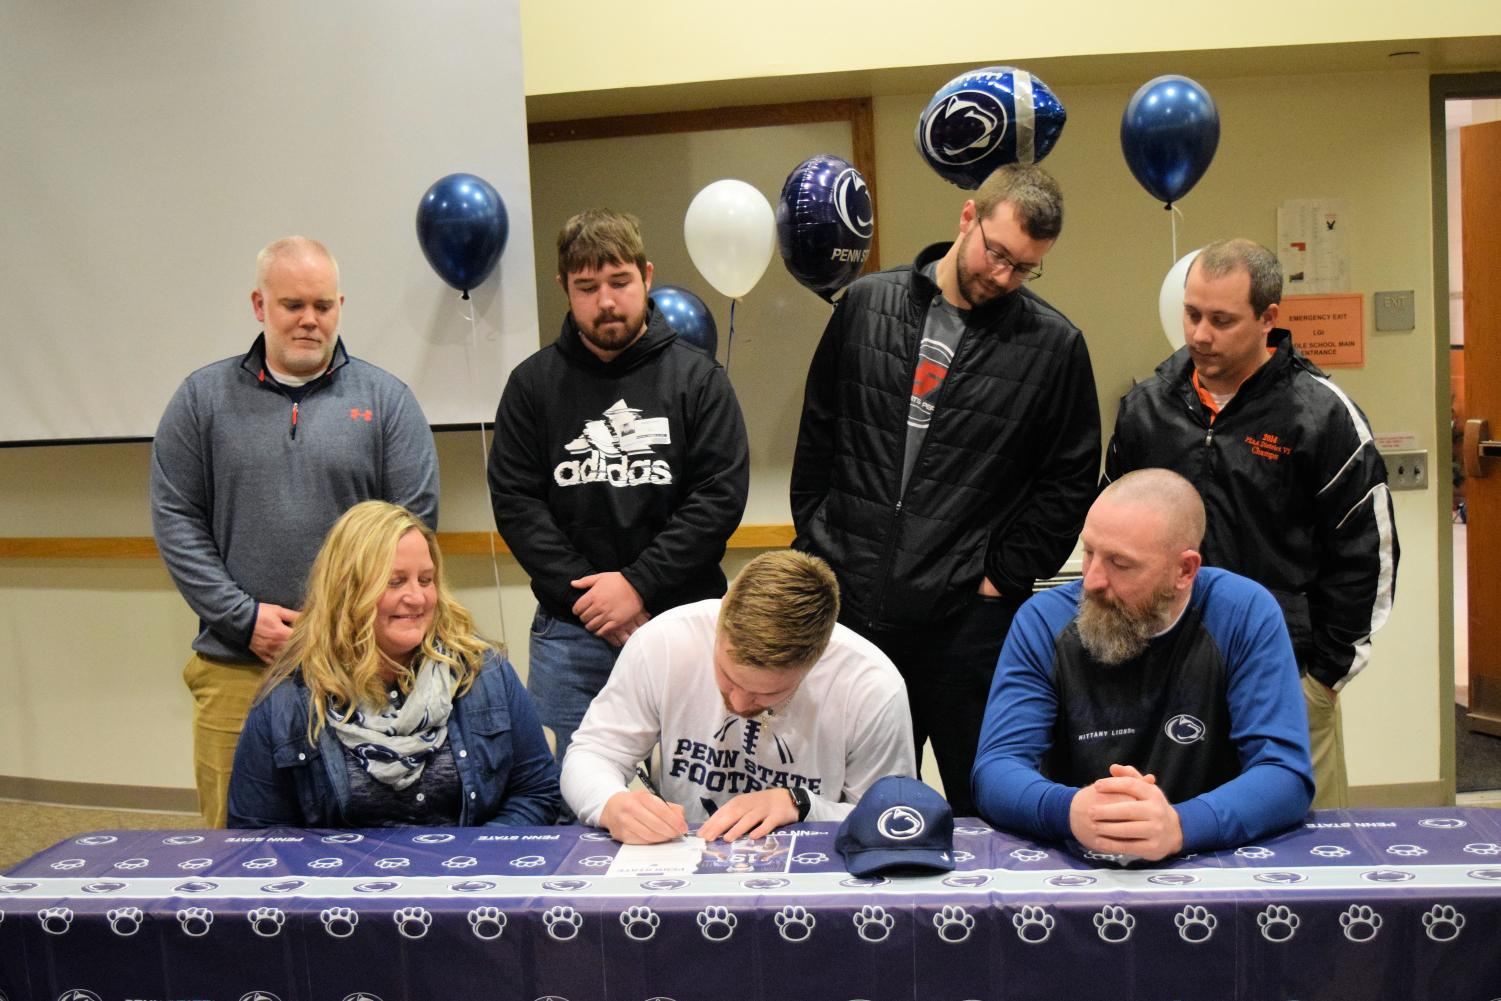 Denver Light making his commitment to PSU at signing ceremony.